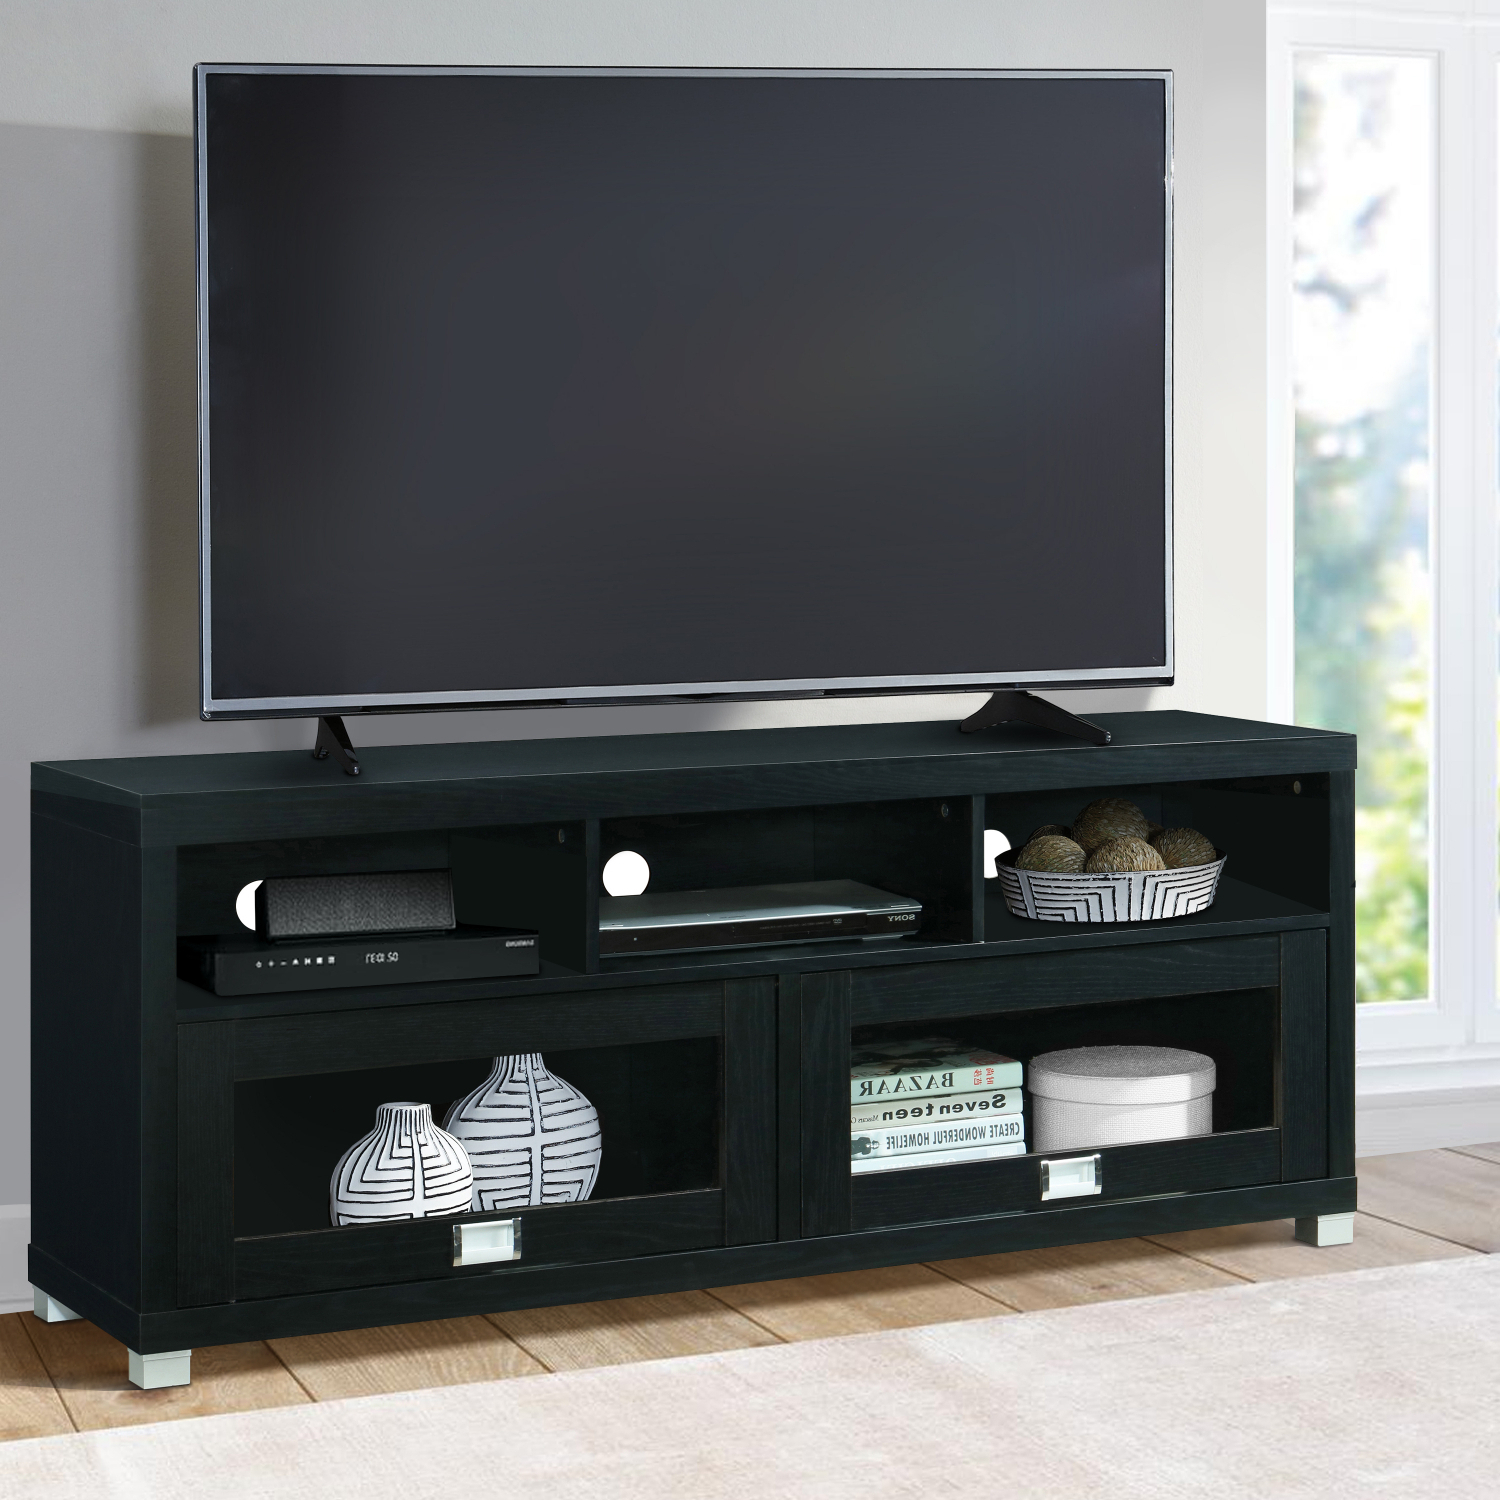 """Famous Chrissy Tv Stands For Tvs Up To 75"""" Throughout Tv Stand Entertainment Table Wood Finish Furniture 58 Inch (View 2 of 25)"""